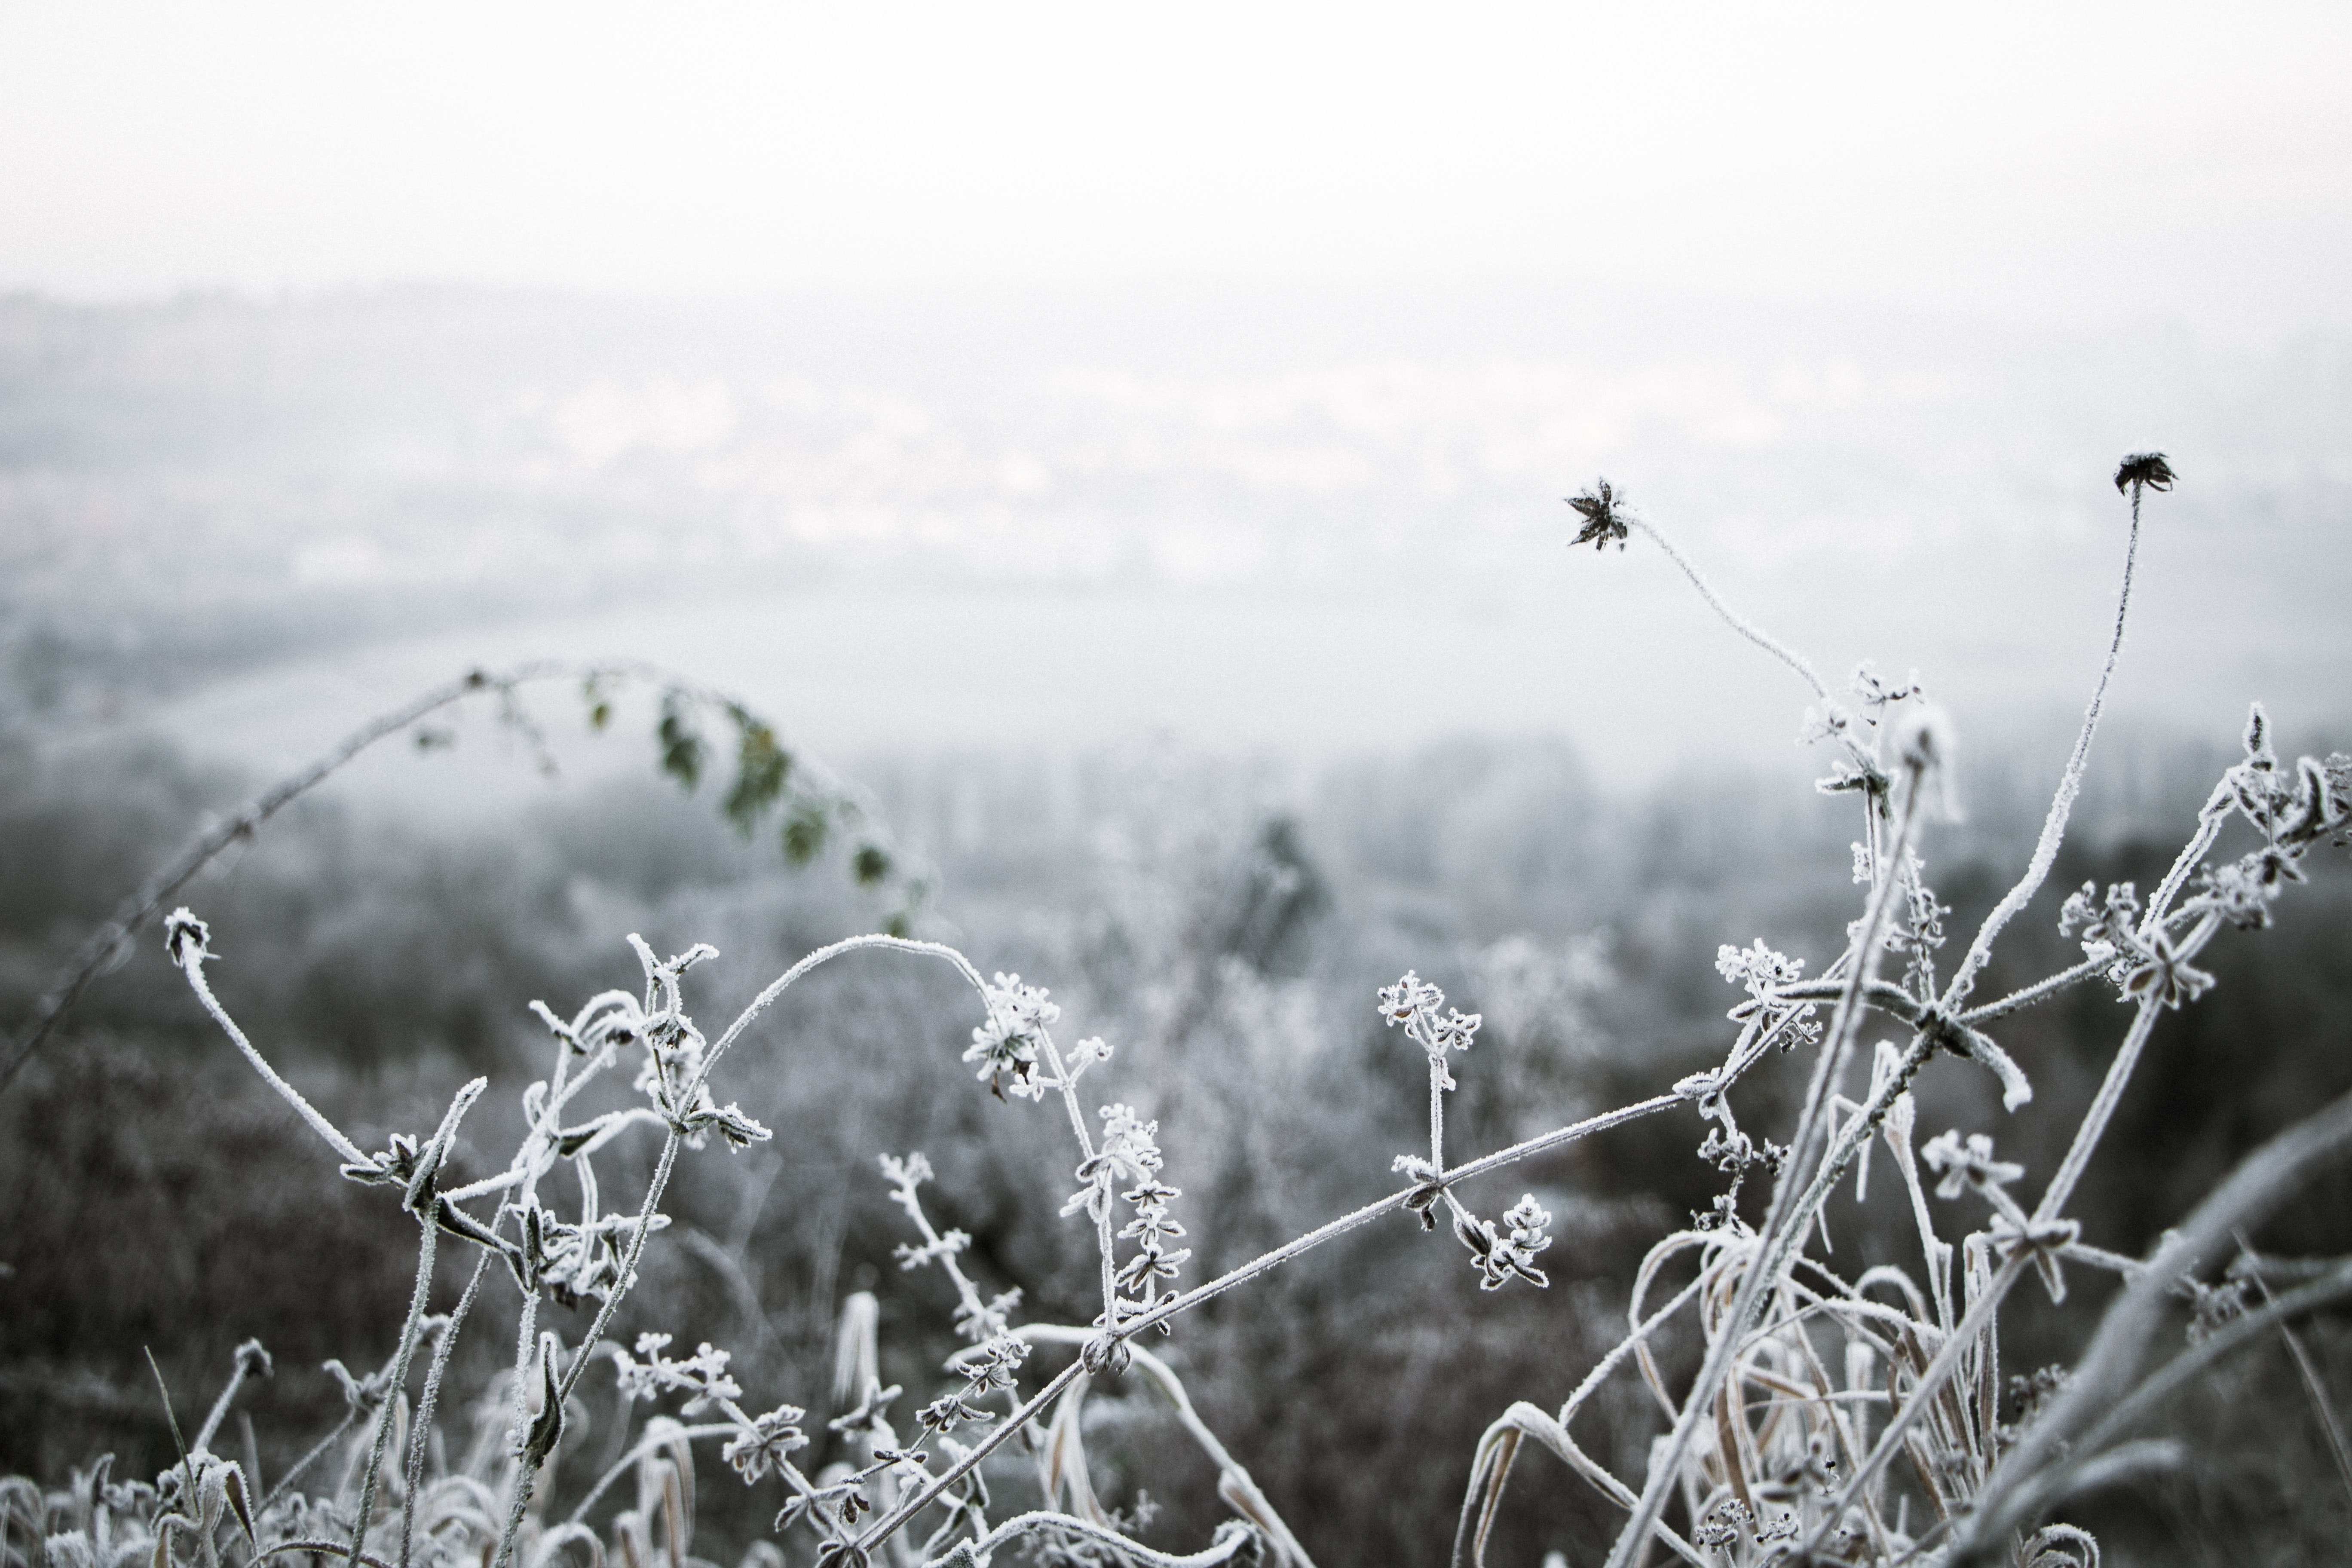 Frost-covered plants curl and twist in the foreground while a white snowscape is visible in the distance